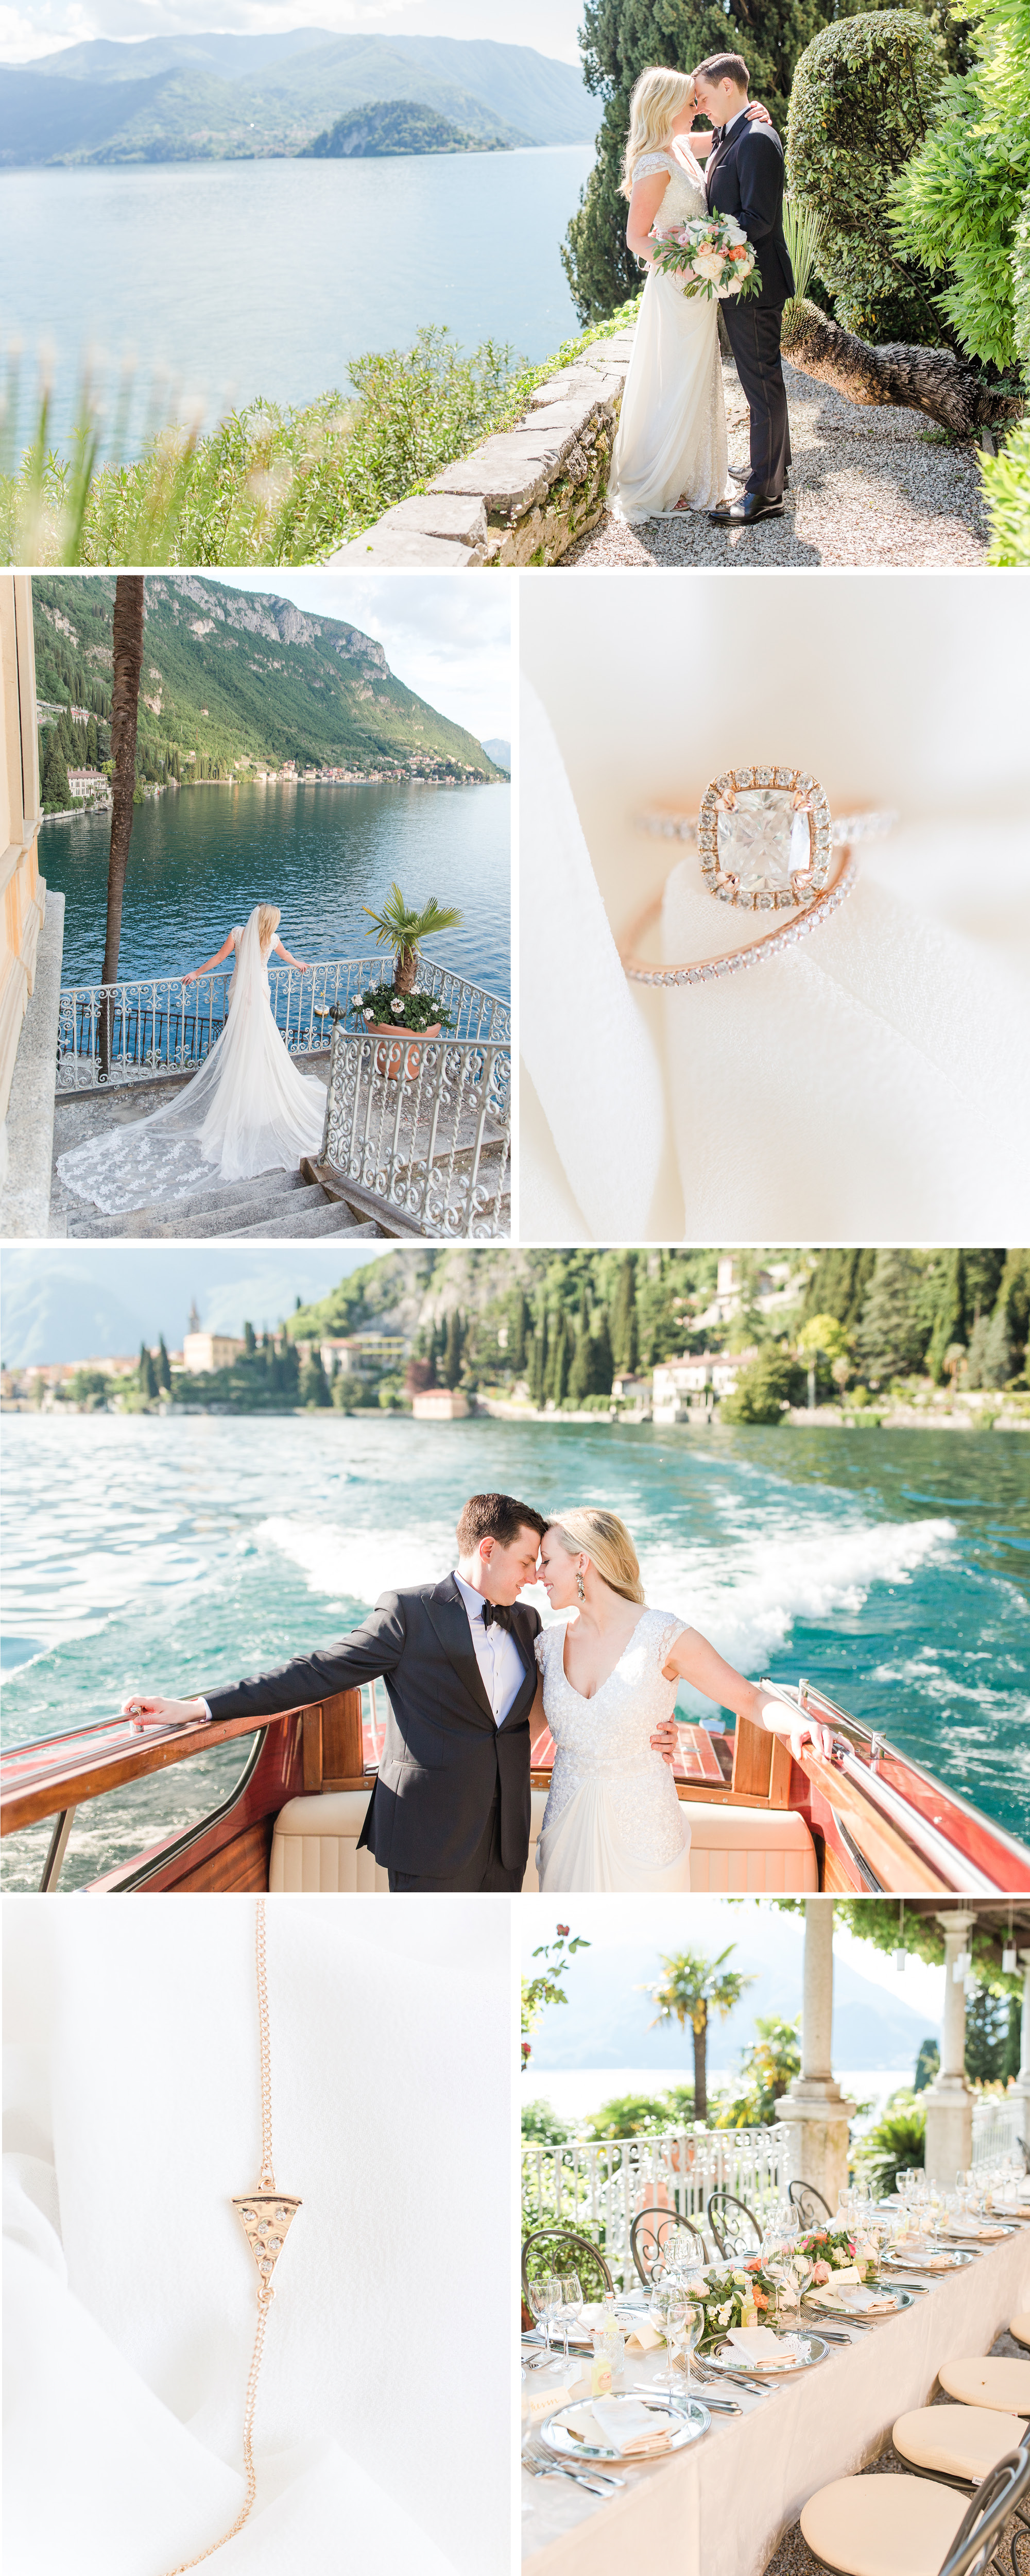 A Elegant European Inspired Lake Como Italy Destination Wedding by Katelyn James Photography